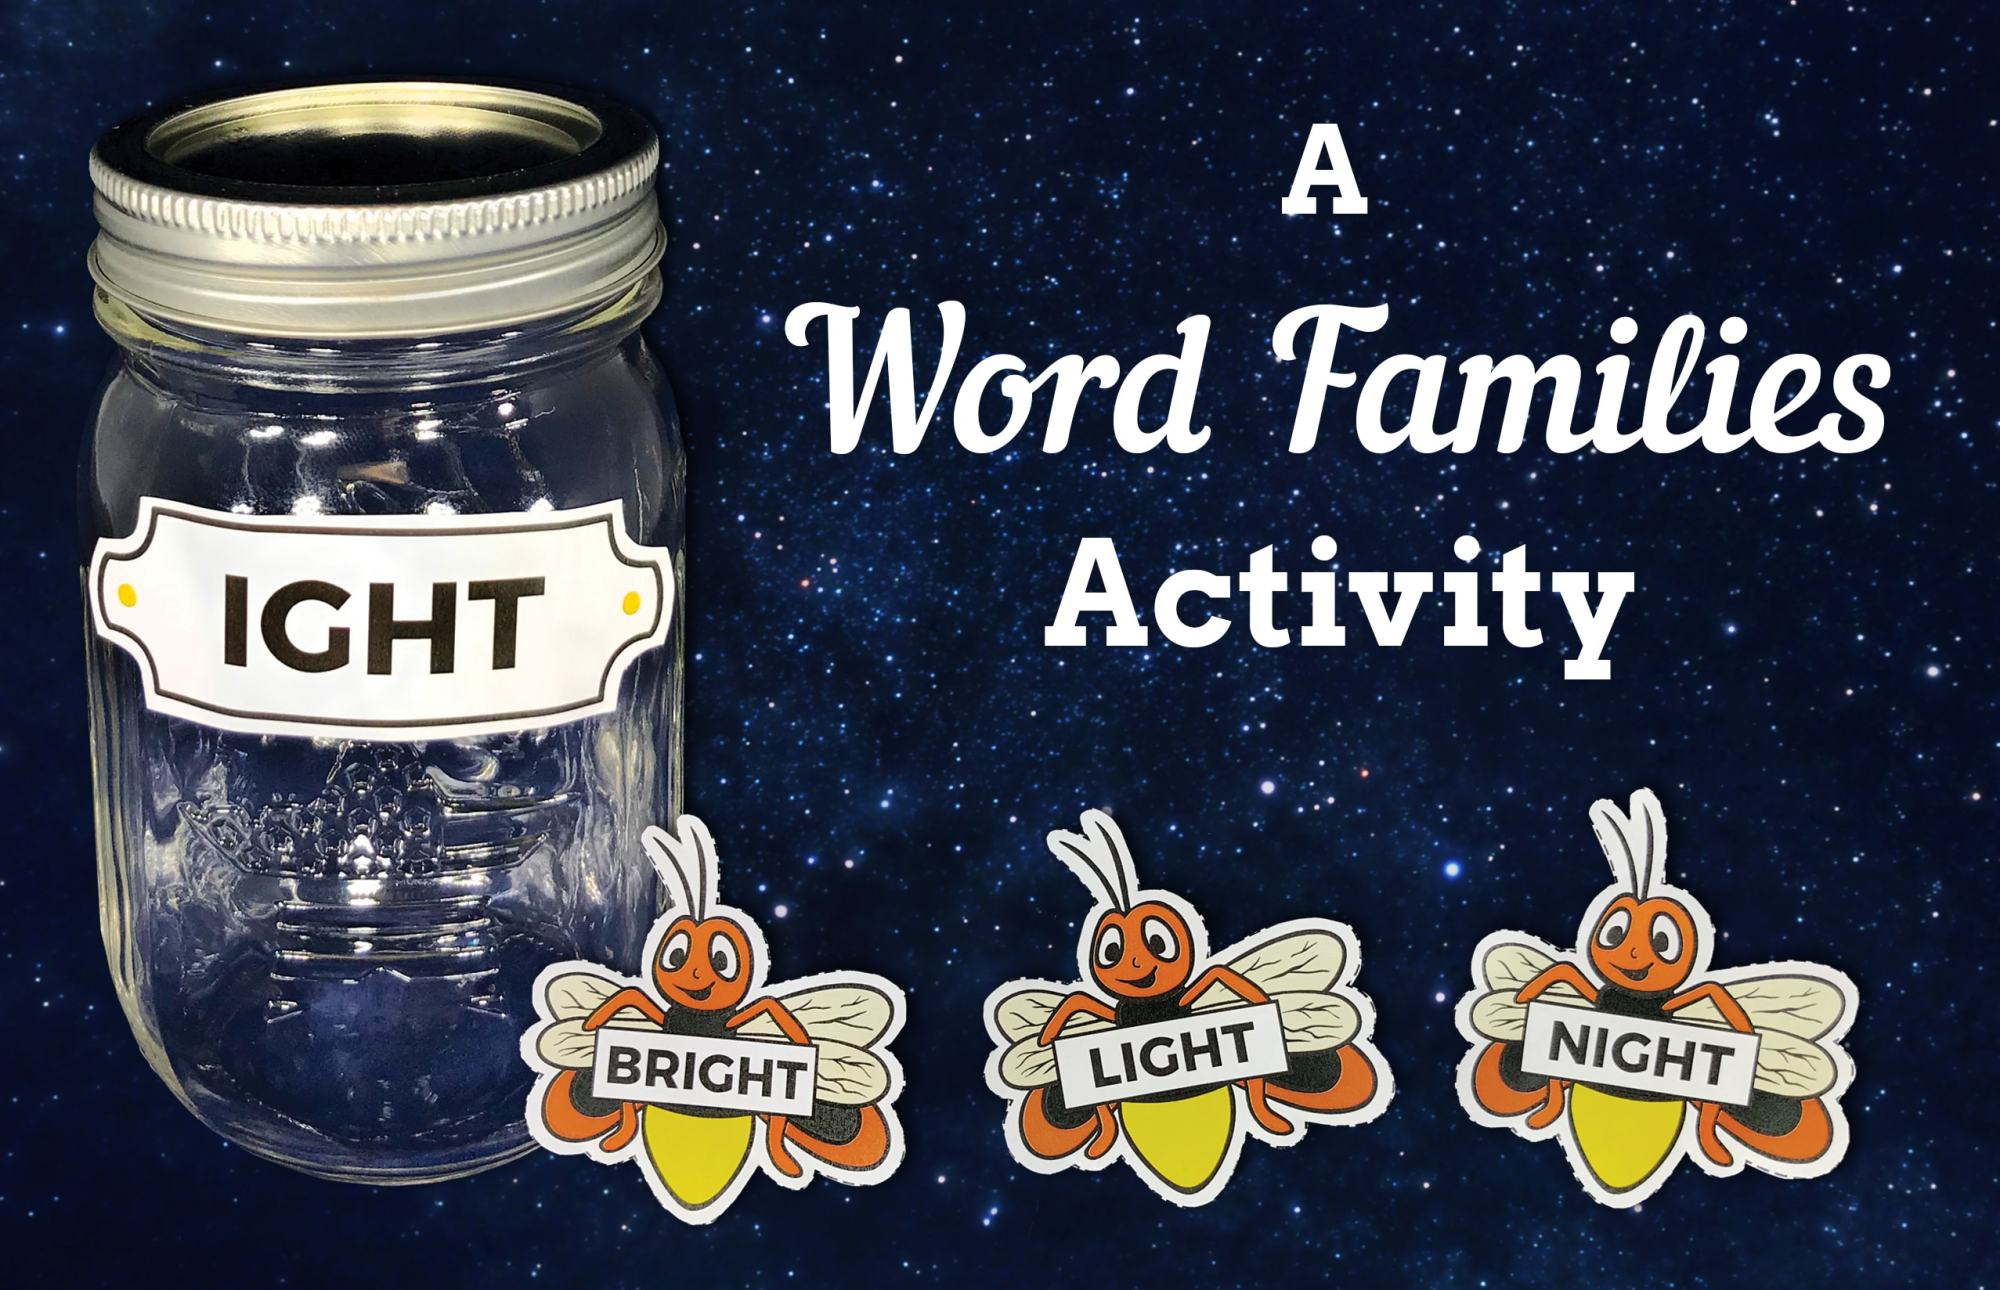 hight resolution of Word Family Fireflies